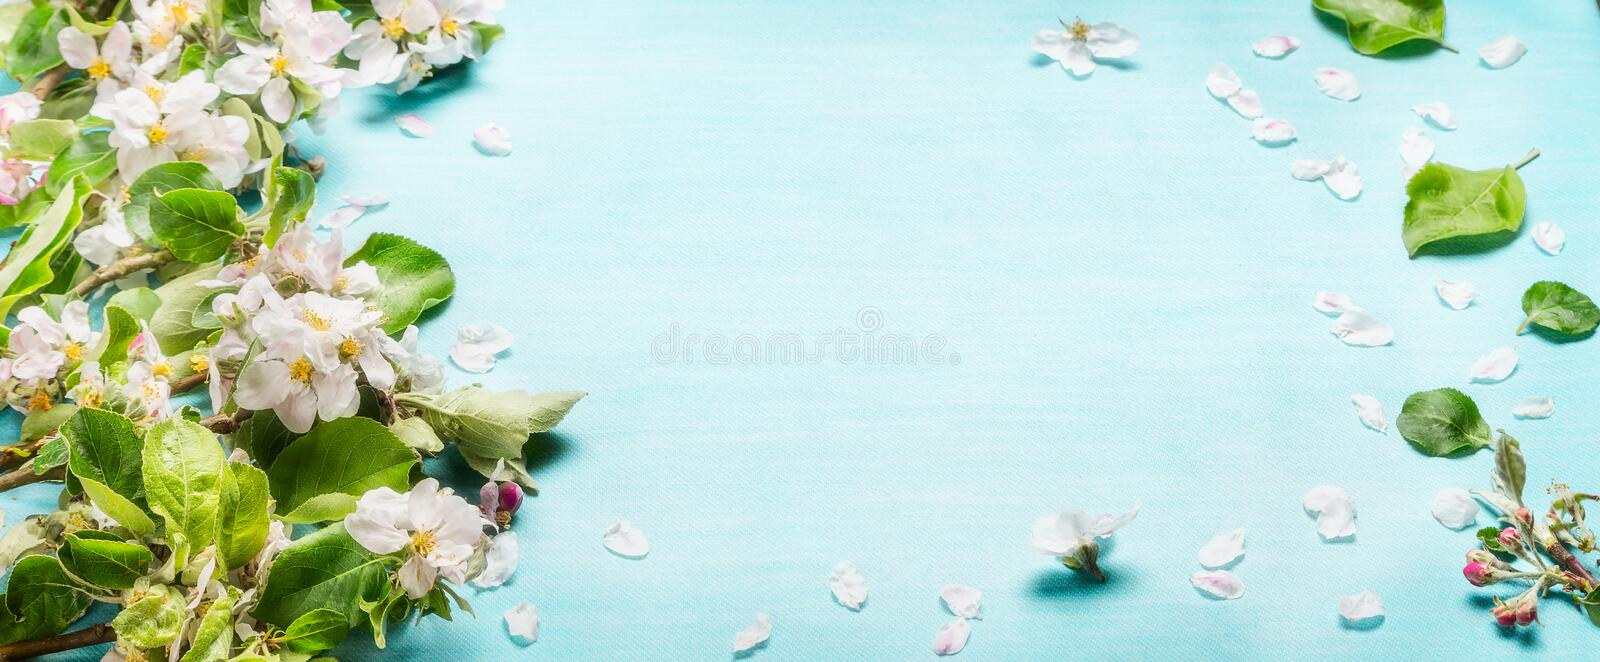 Spring blossom twigs on blue turquoise background, top view, banner. Springtime stock photography